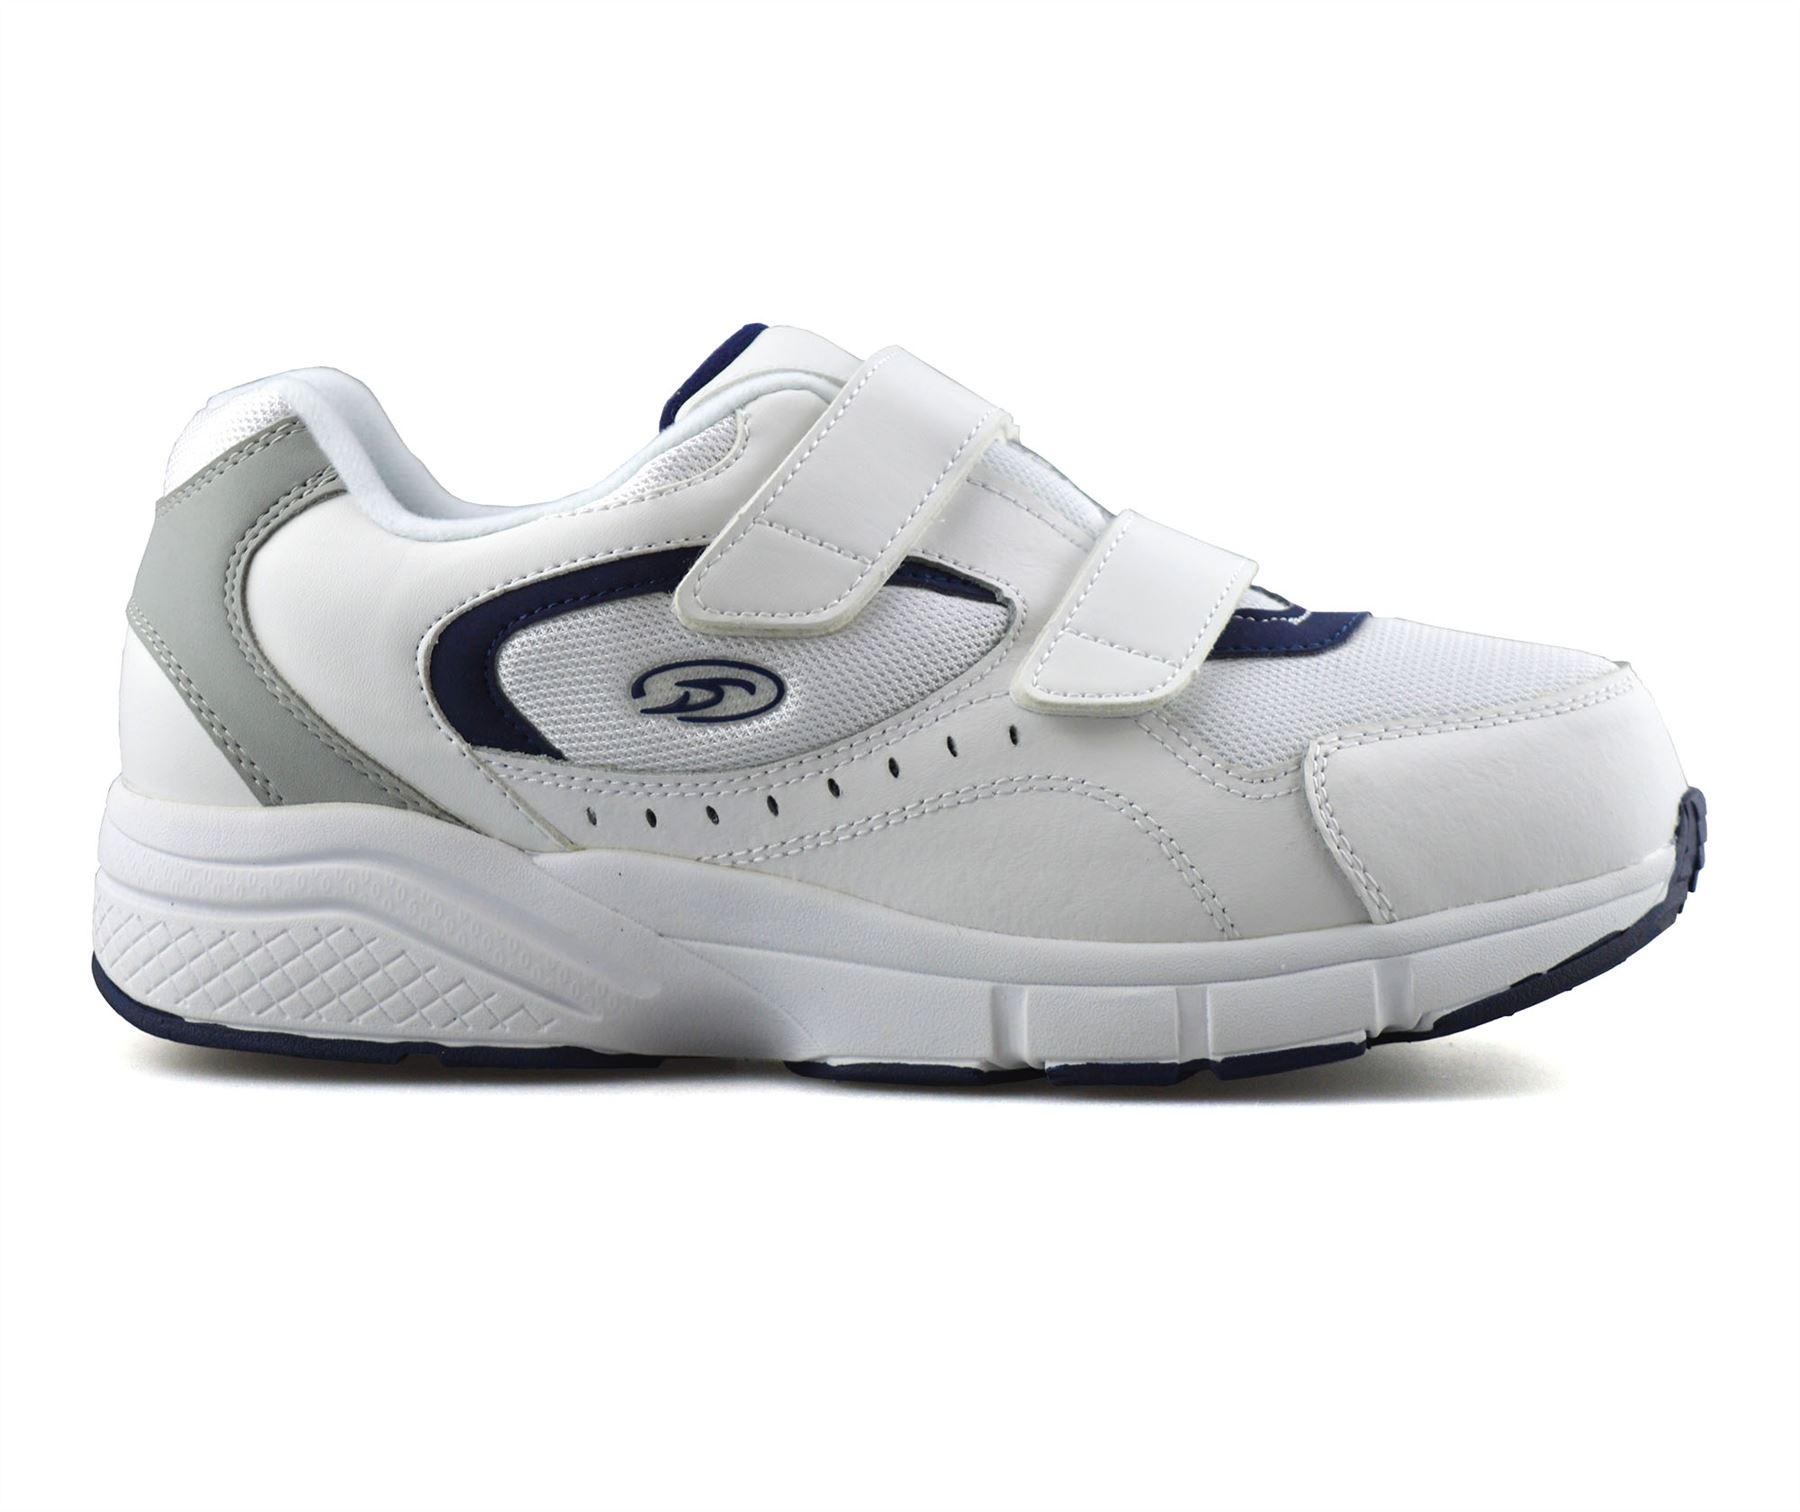 Mens-Dr-Scholls-Wide-Fit-Leather-Casual-Walking-Gym-Comfort-Trainers-Shoes-Size thumbnail 10